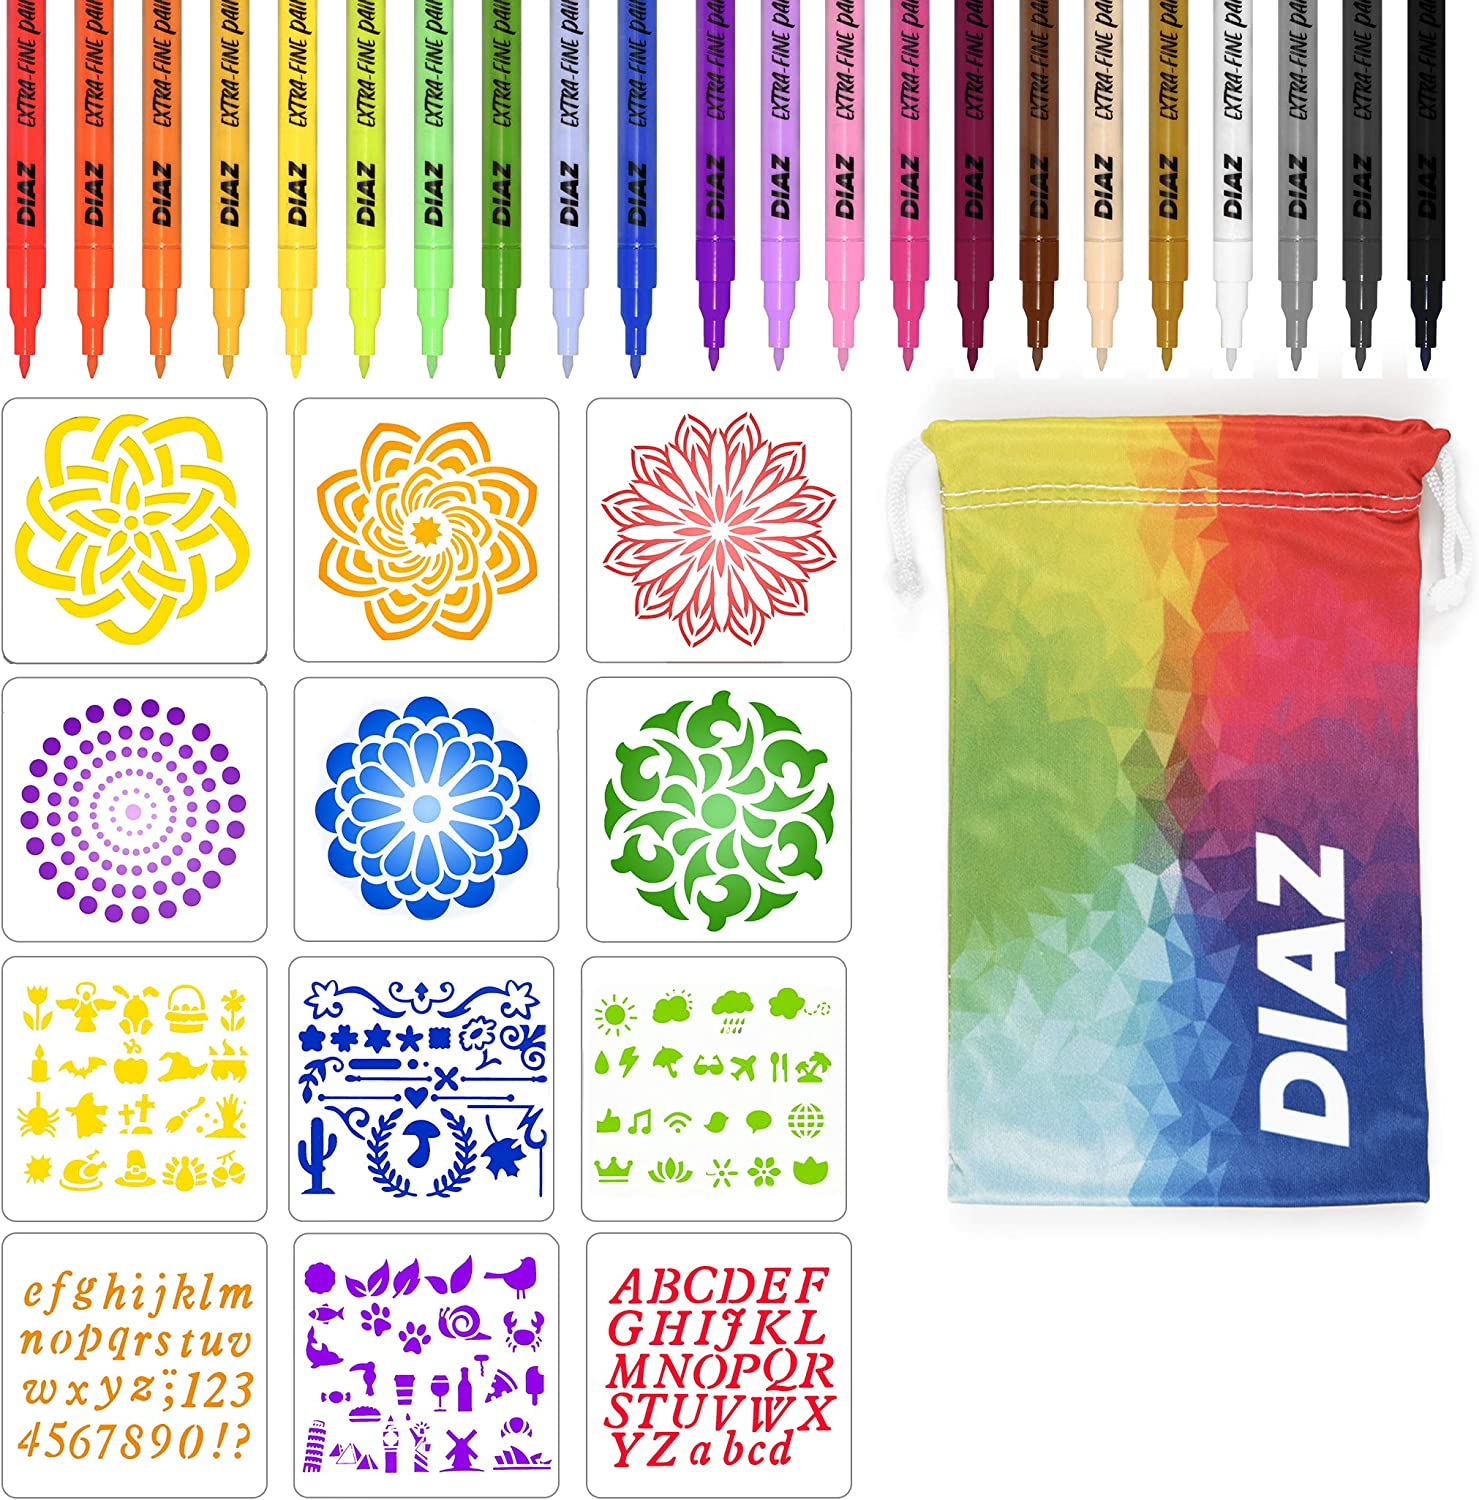 Sales results No. 1 24 Acrylic Extra Fine Tip Paint Under blast sales Come Pens With F Markers